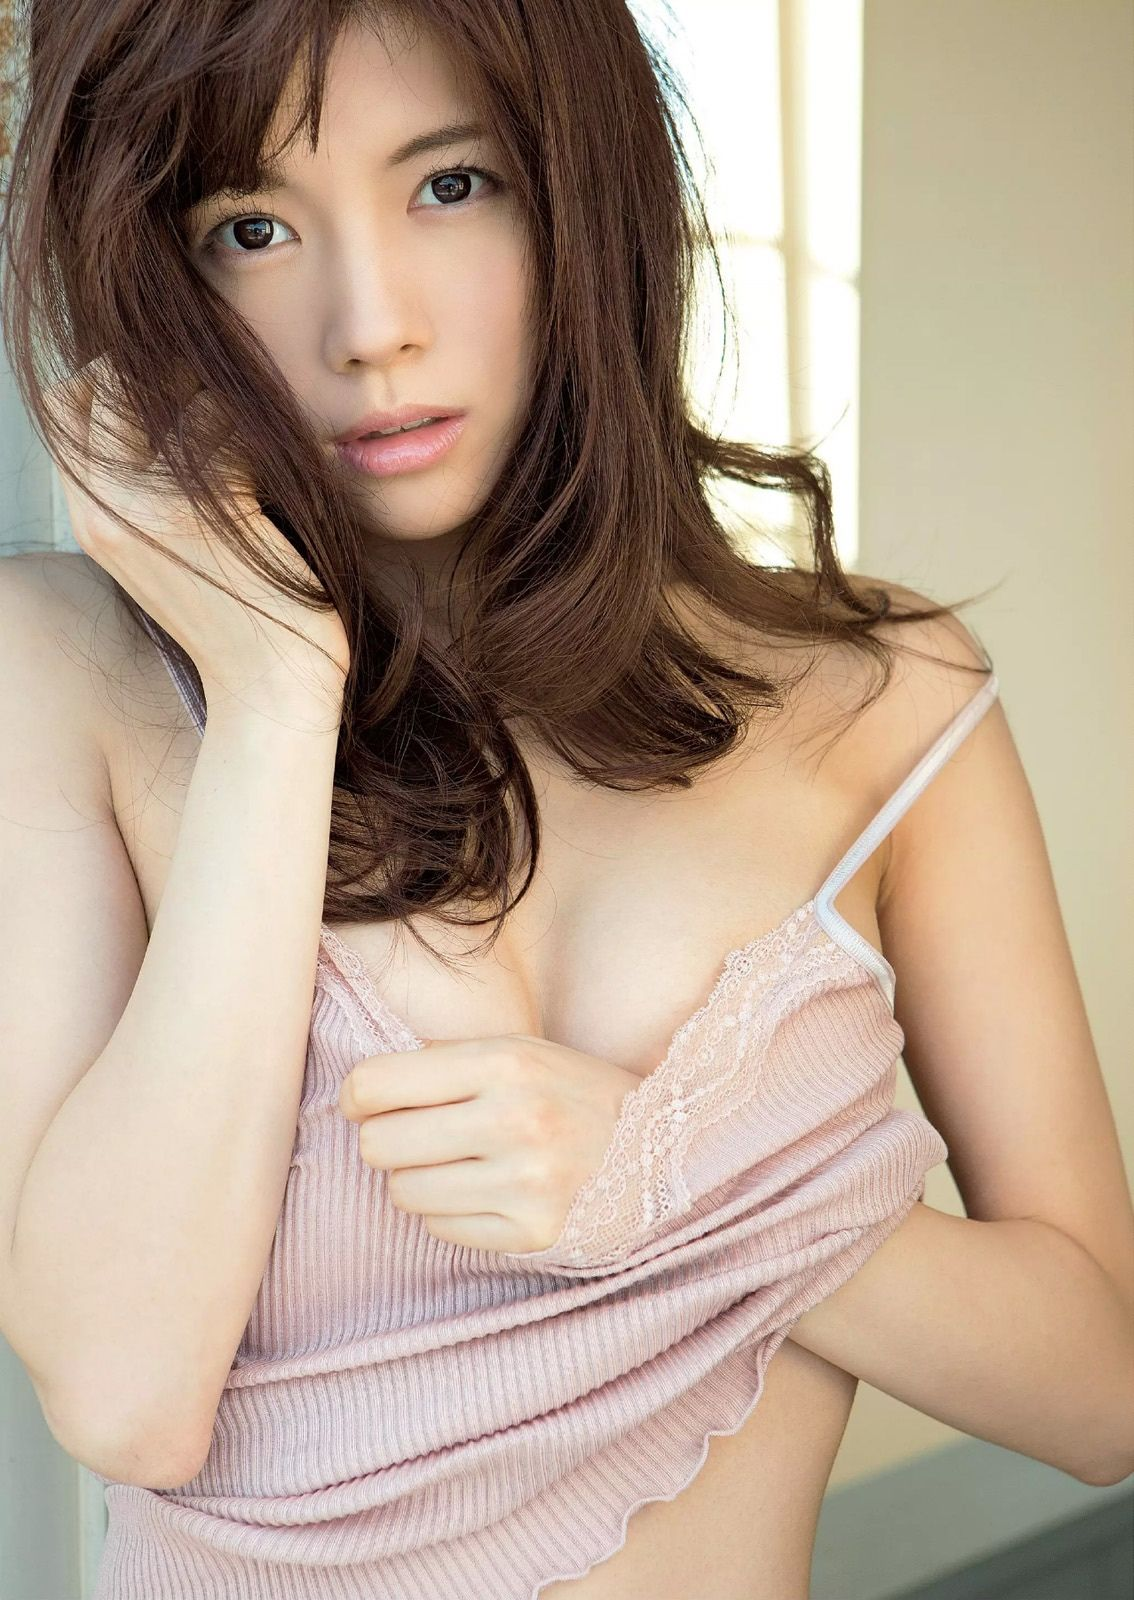 a-beautiful-g: 松川佑依子 | japanese amature | japanese | pinterest